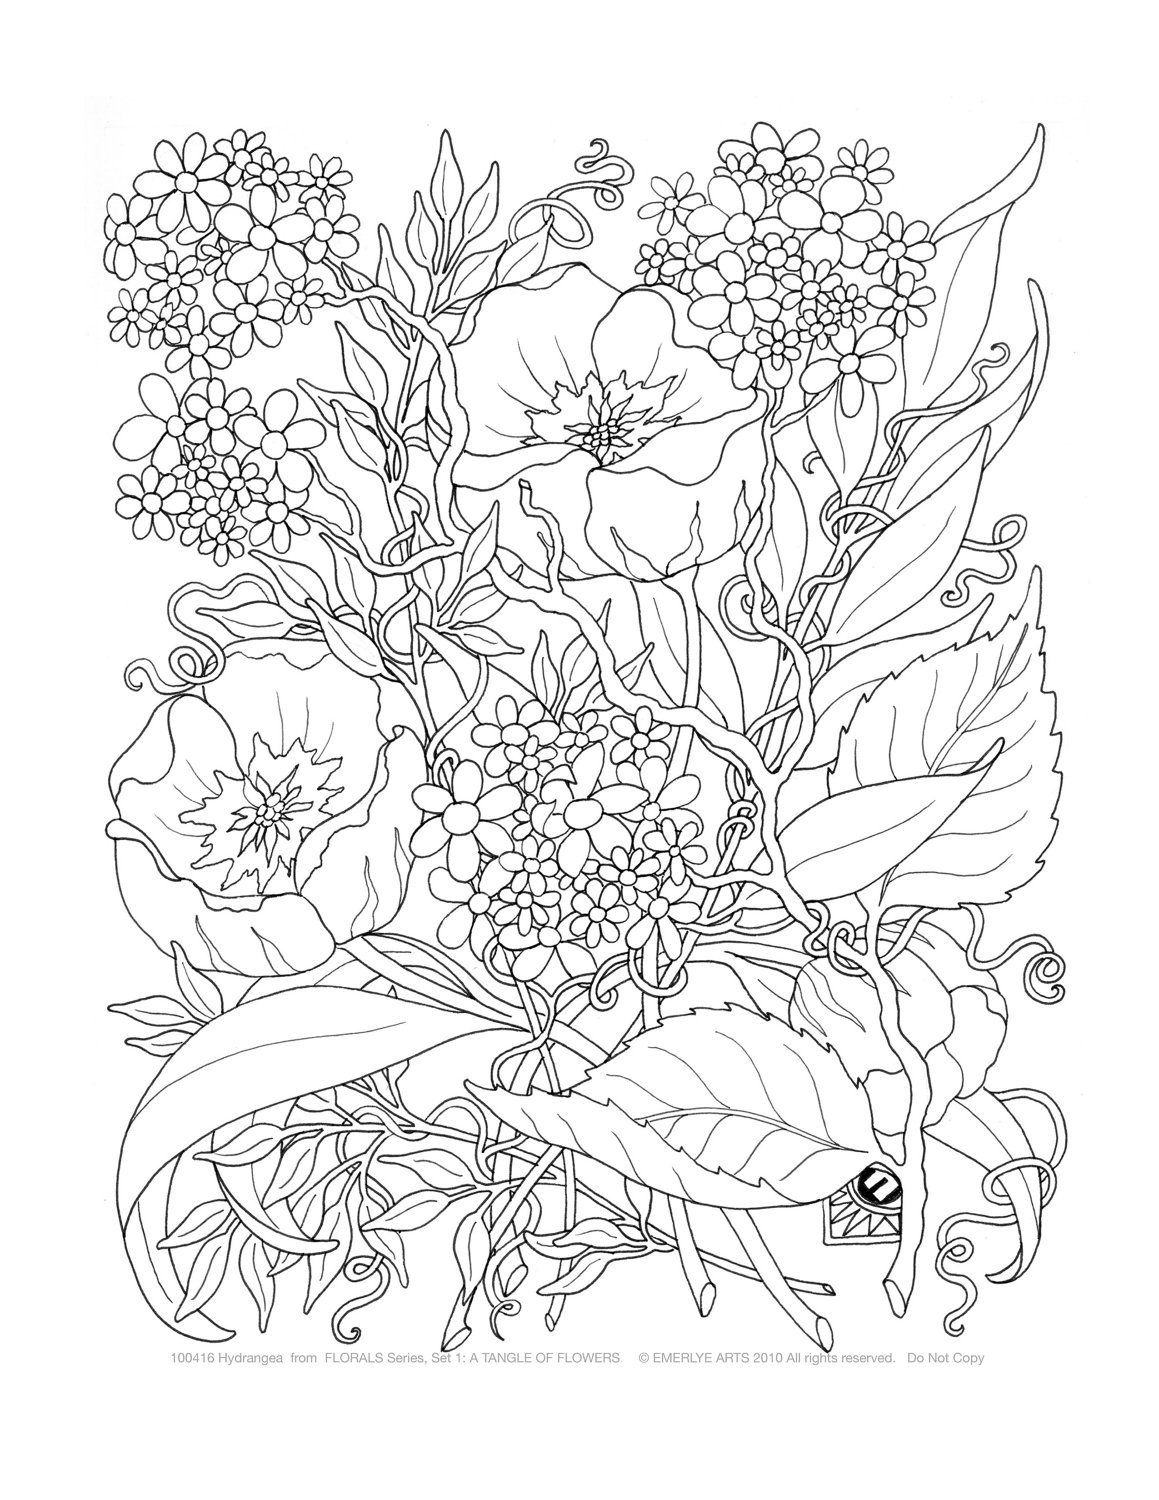 Coloring Book For Adults  Adult Coloring Pages Printable Free Free Printable